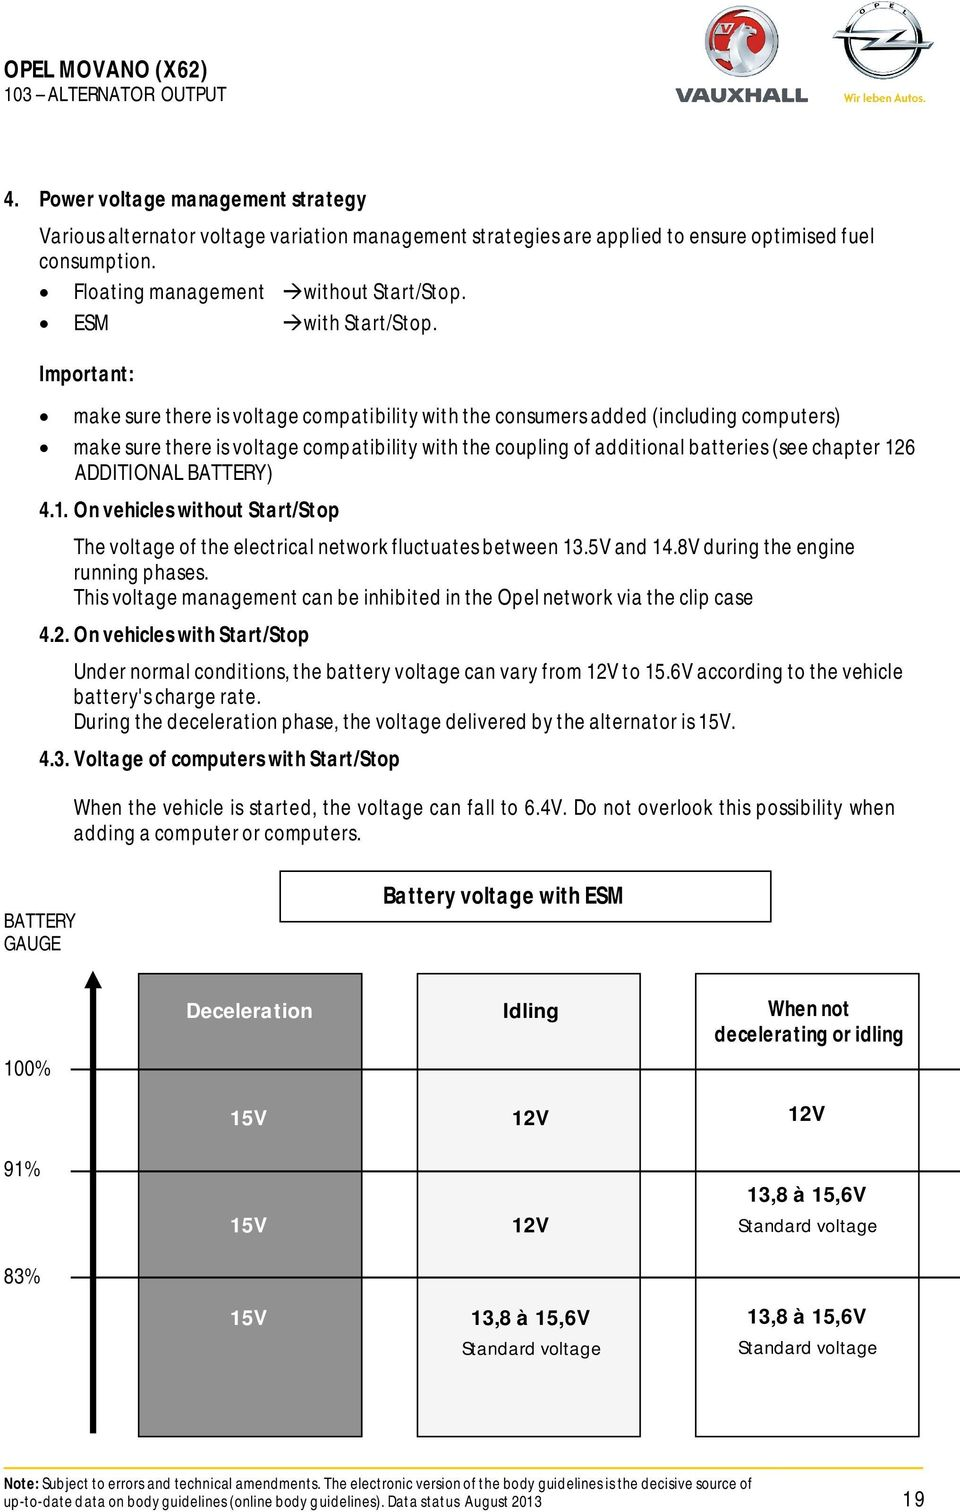 Conversion guideline opel movano x62 pdf important make sure there is voltage compatibility with the consumers added including computers asfbconference2016 Images